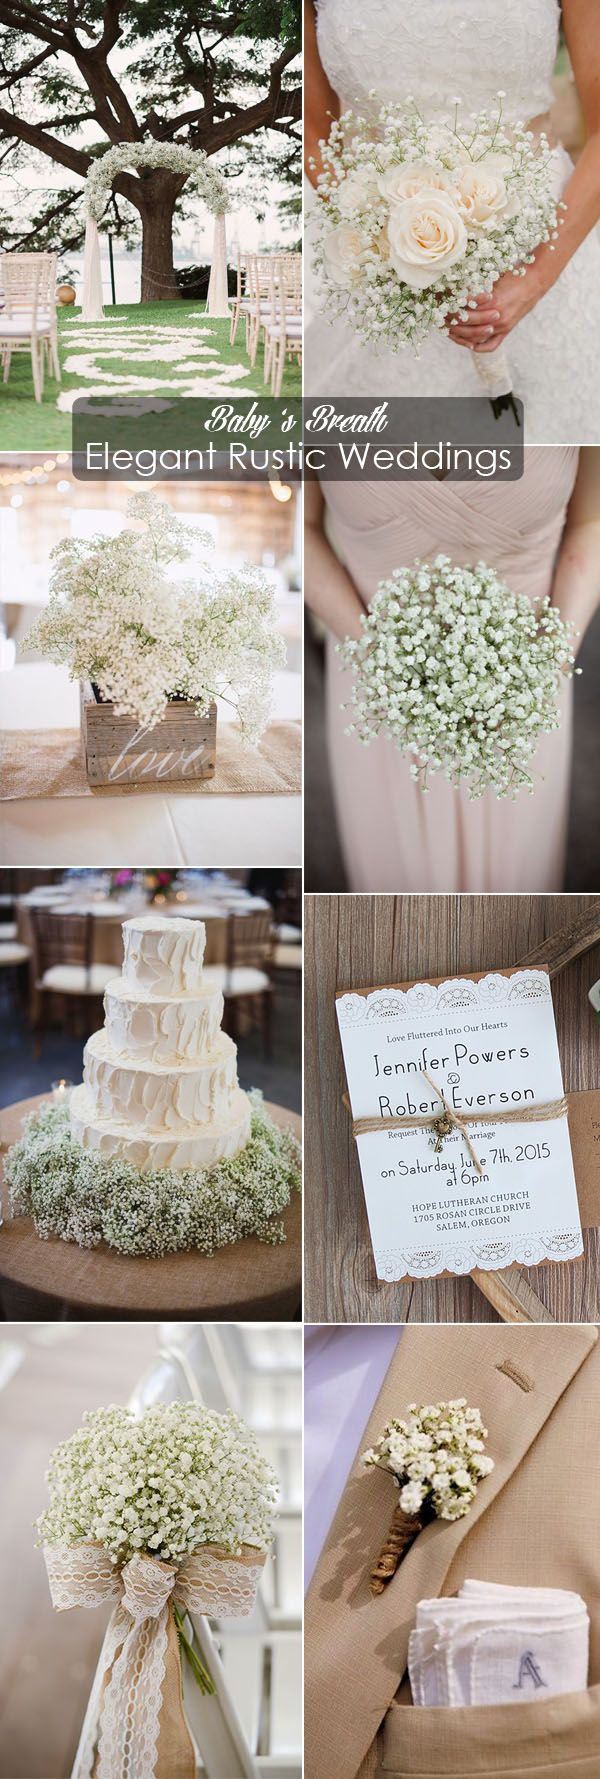 inspirational baby's breath elegant rustic wedding ideas